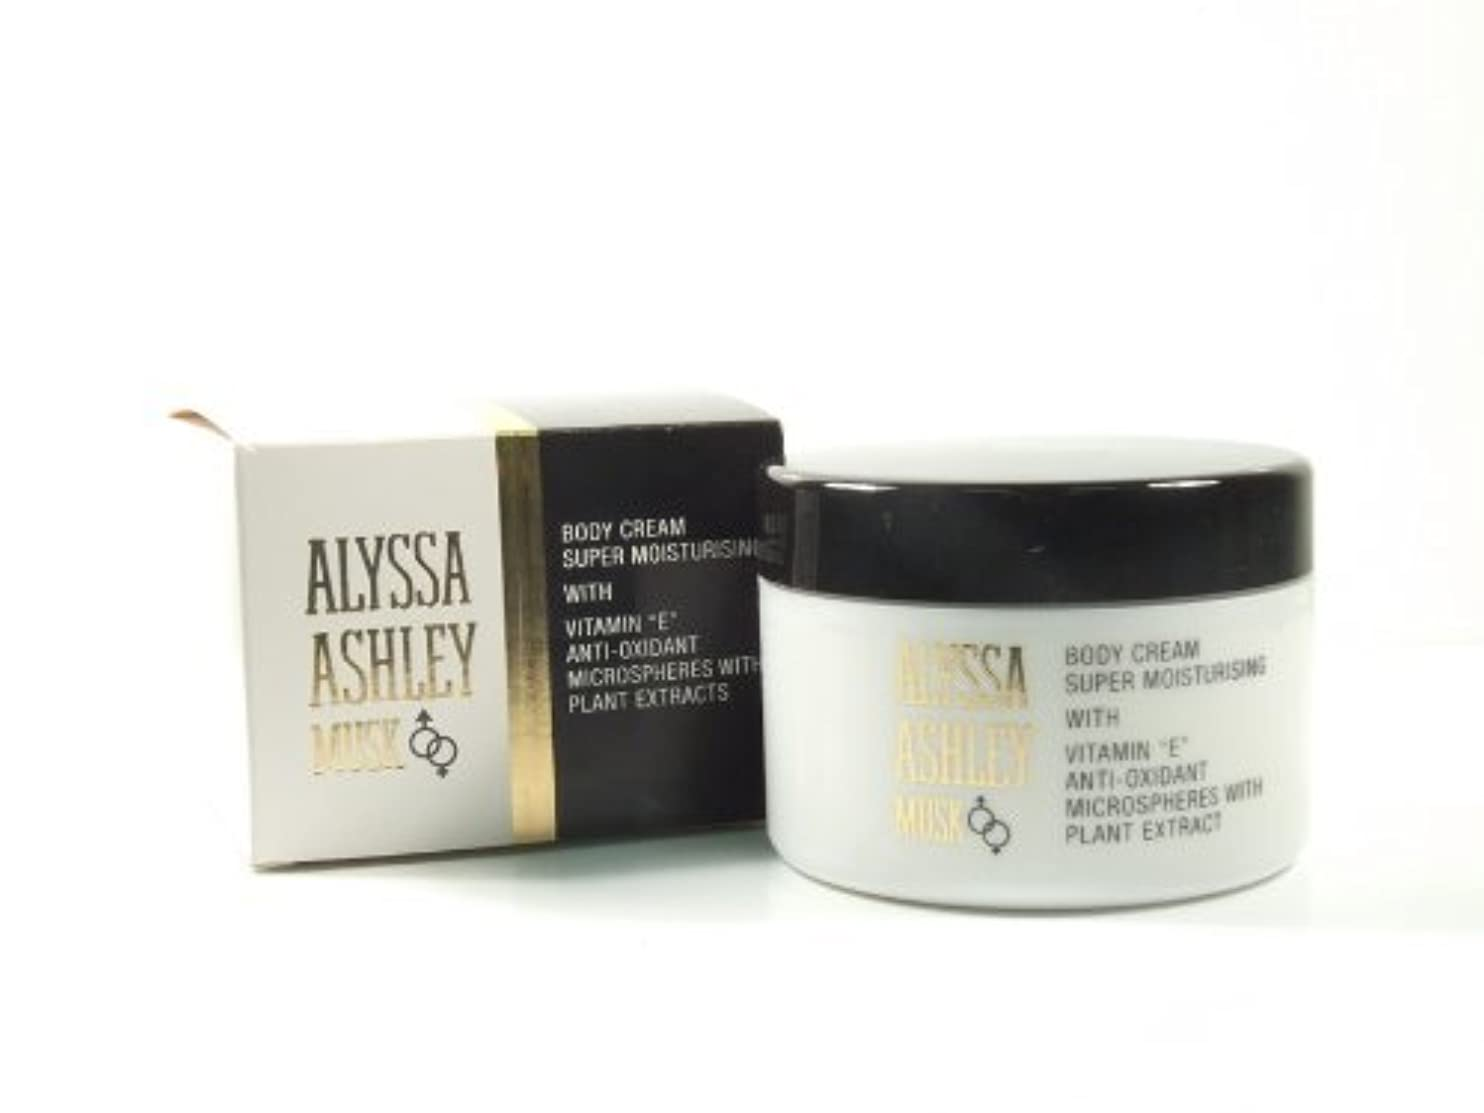 見せますを必要としています出口Alyssa Ashley Musk Body Cream 250ml by Alyssa Ashley